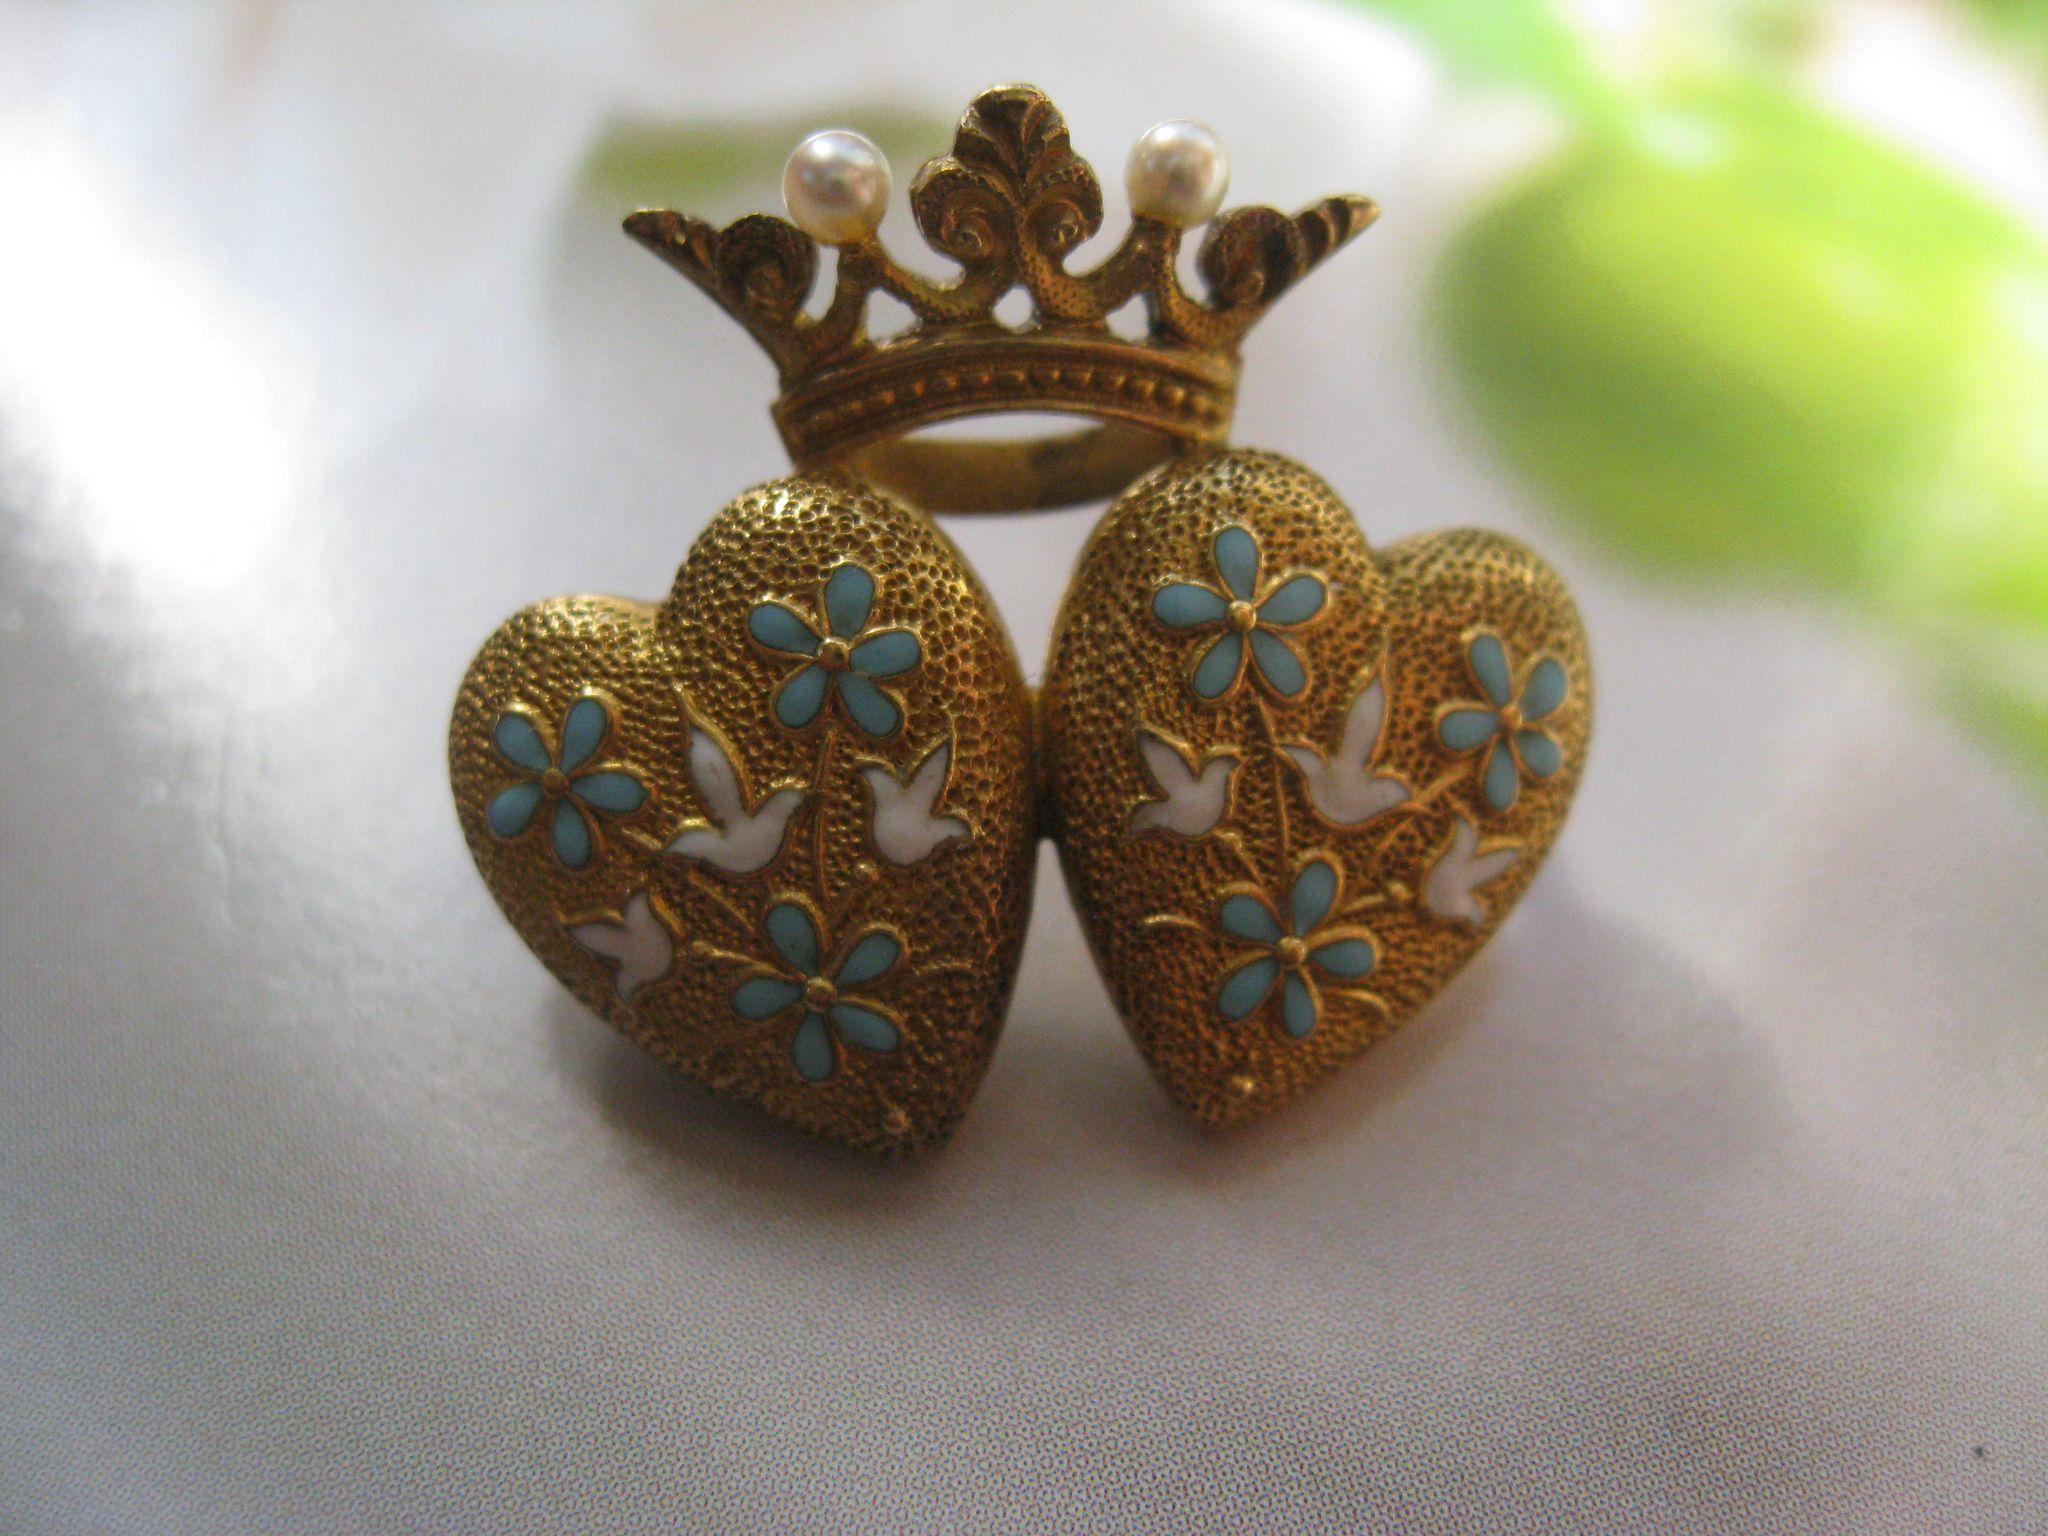 Krementz 14K  Enameled Crowned Double Heart Pin, Antique Art Nouveau